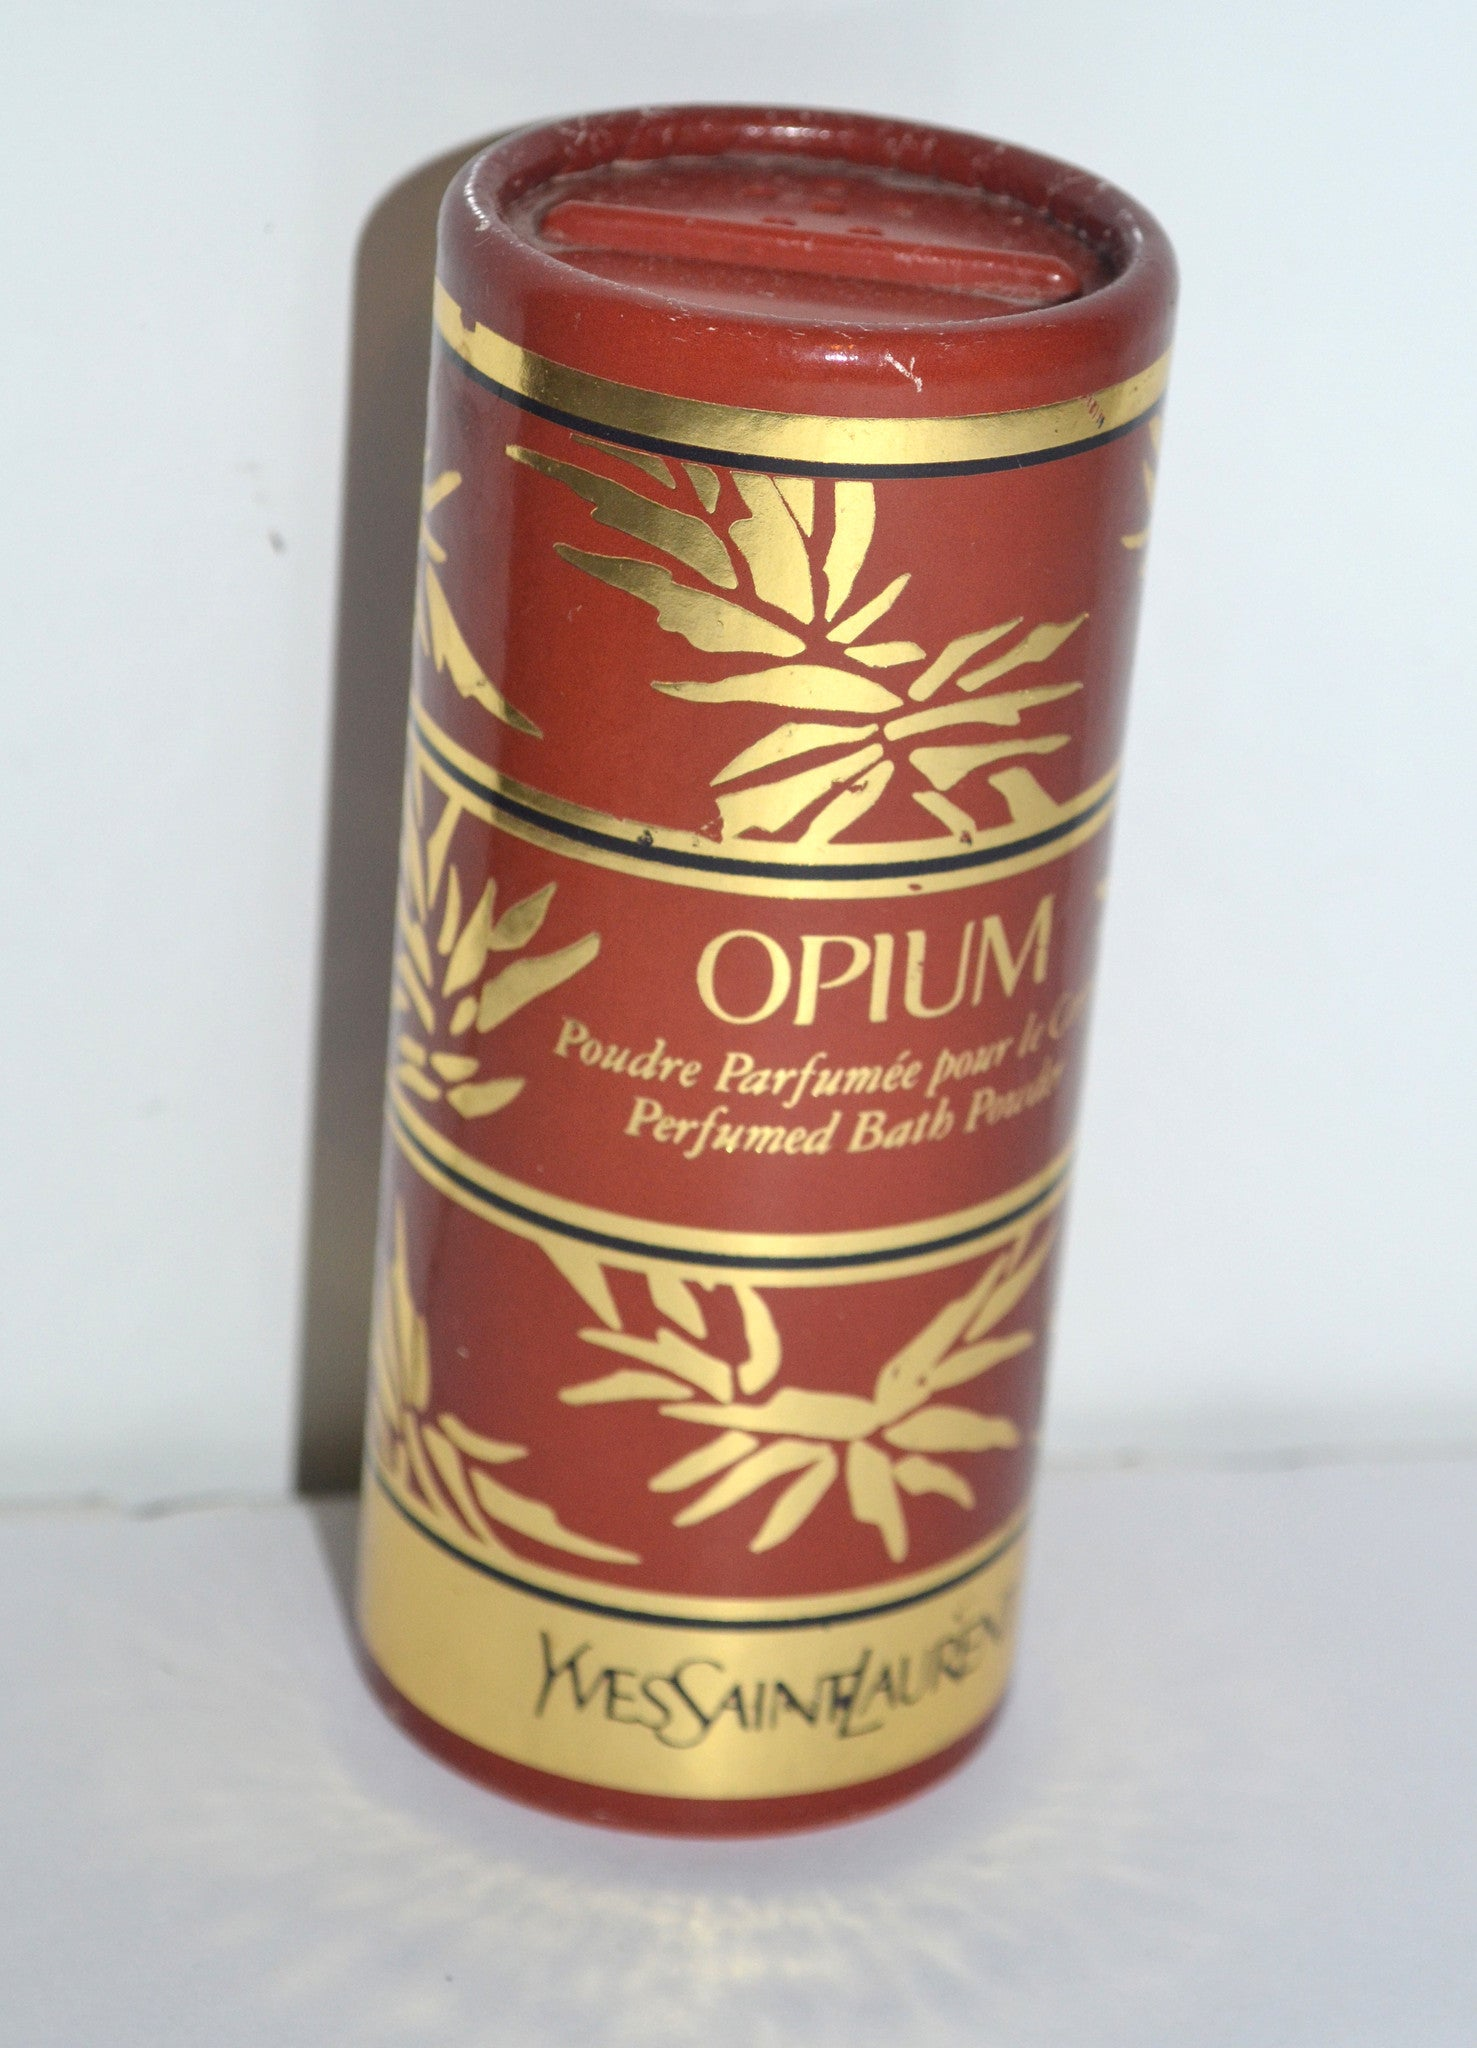 Yves Saint Laurent Opium Perfumed Bath Powder